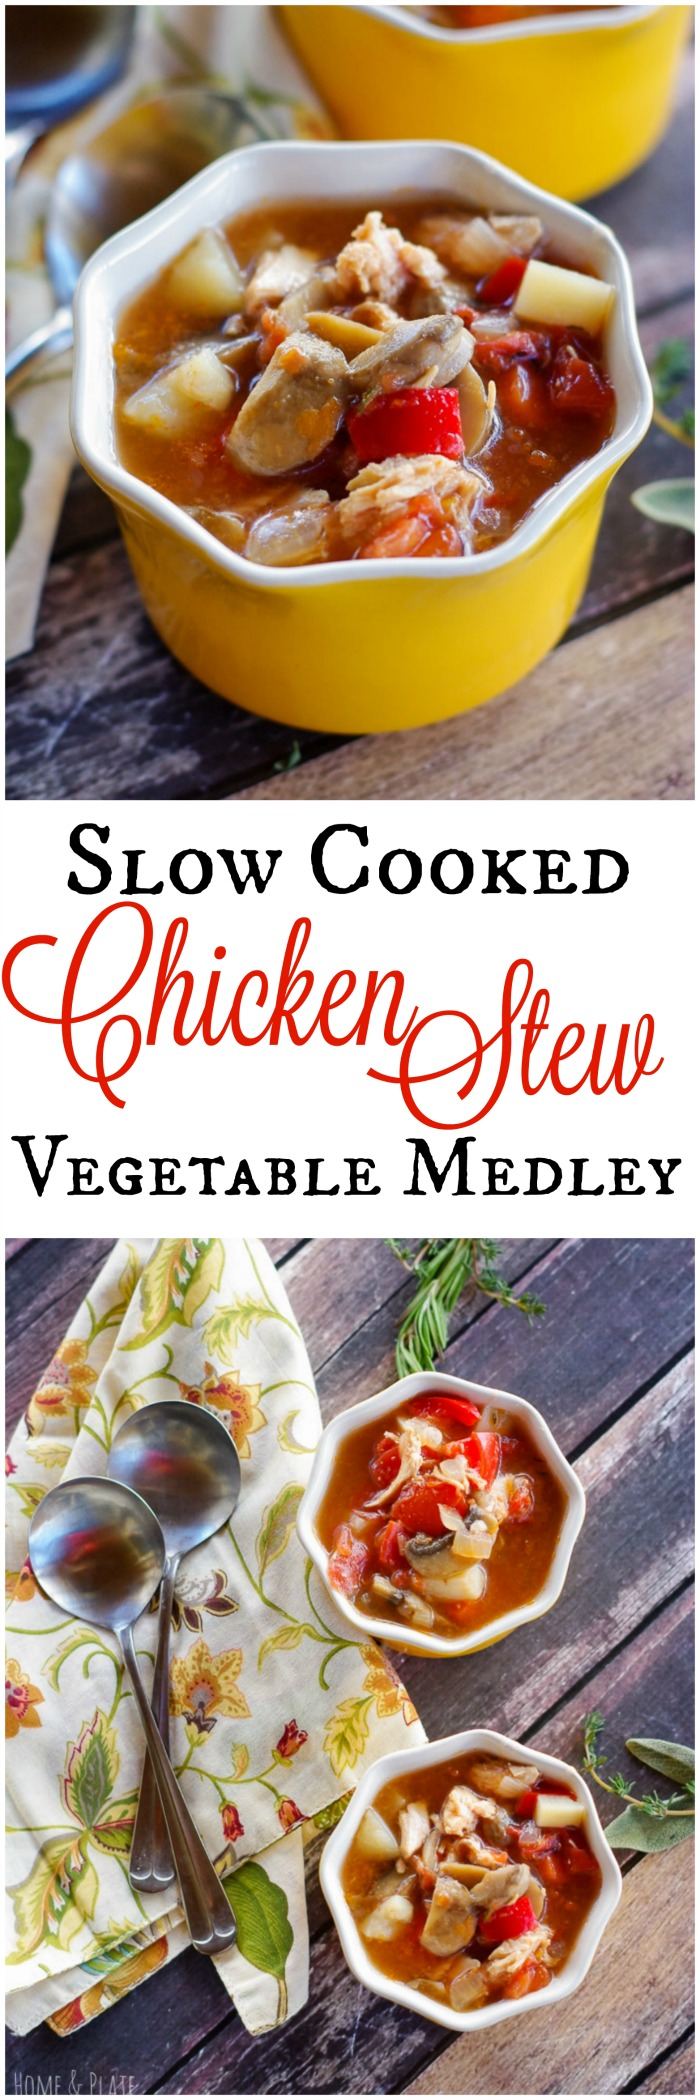 Slow Cooked Chicken Stew Vegetable Medley | www.homeandplate.com | Tender shredded chicken has been slow cooked in this one pot dish that is paired with a medley of vegetables.